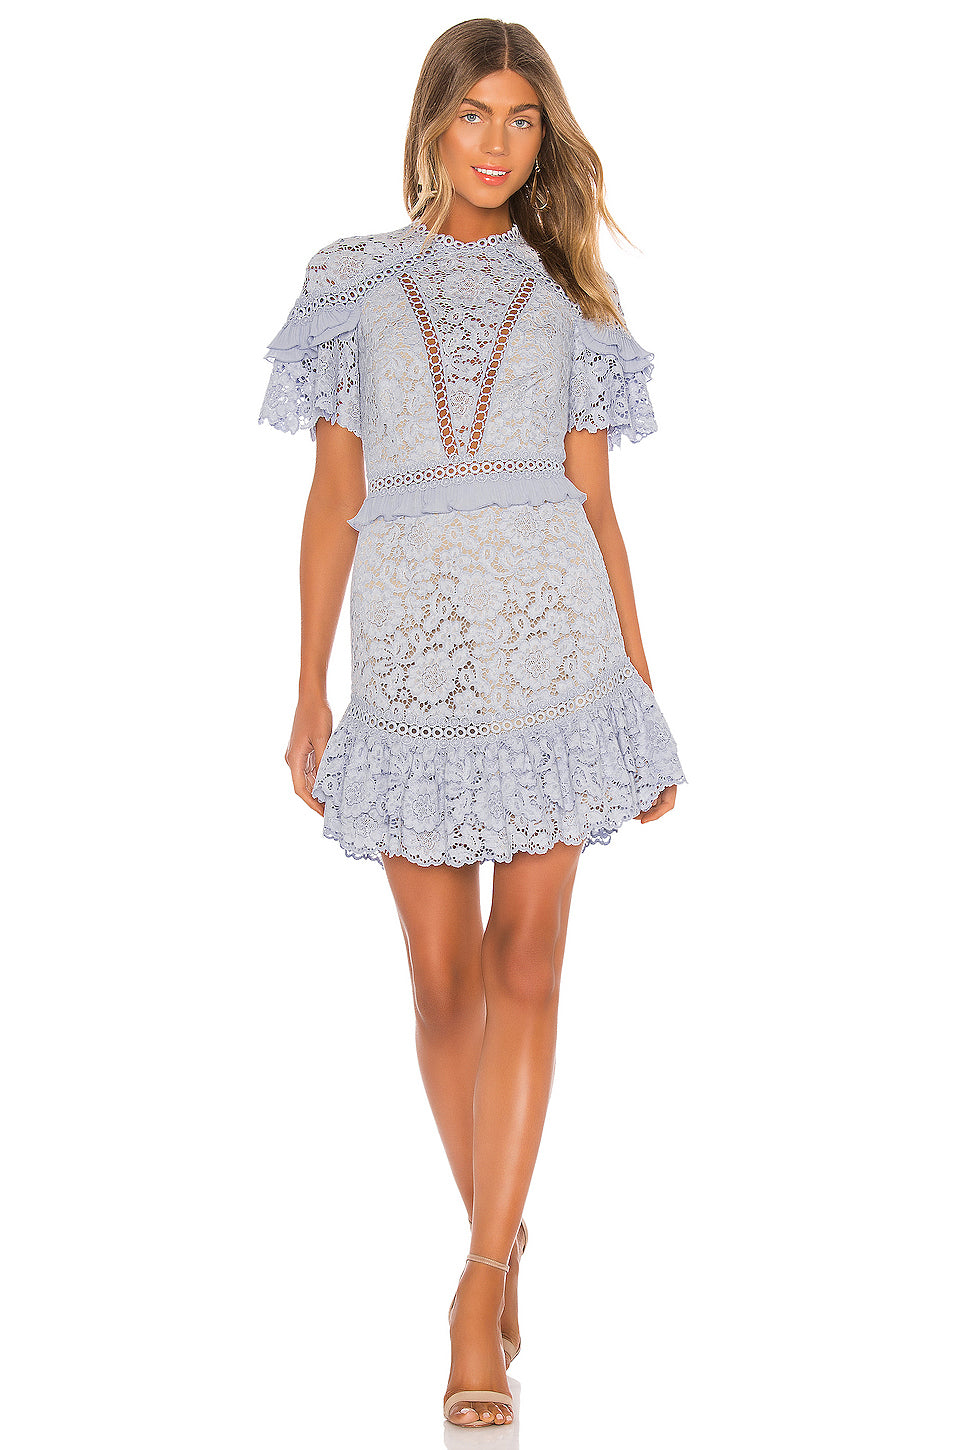 Saylor Julep Floral Lace Dress